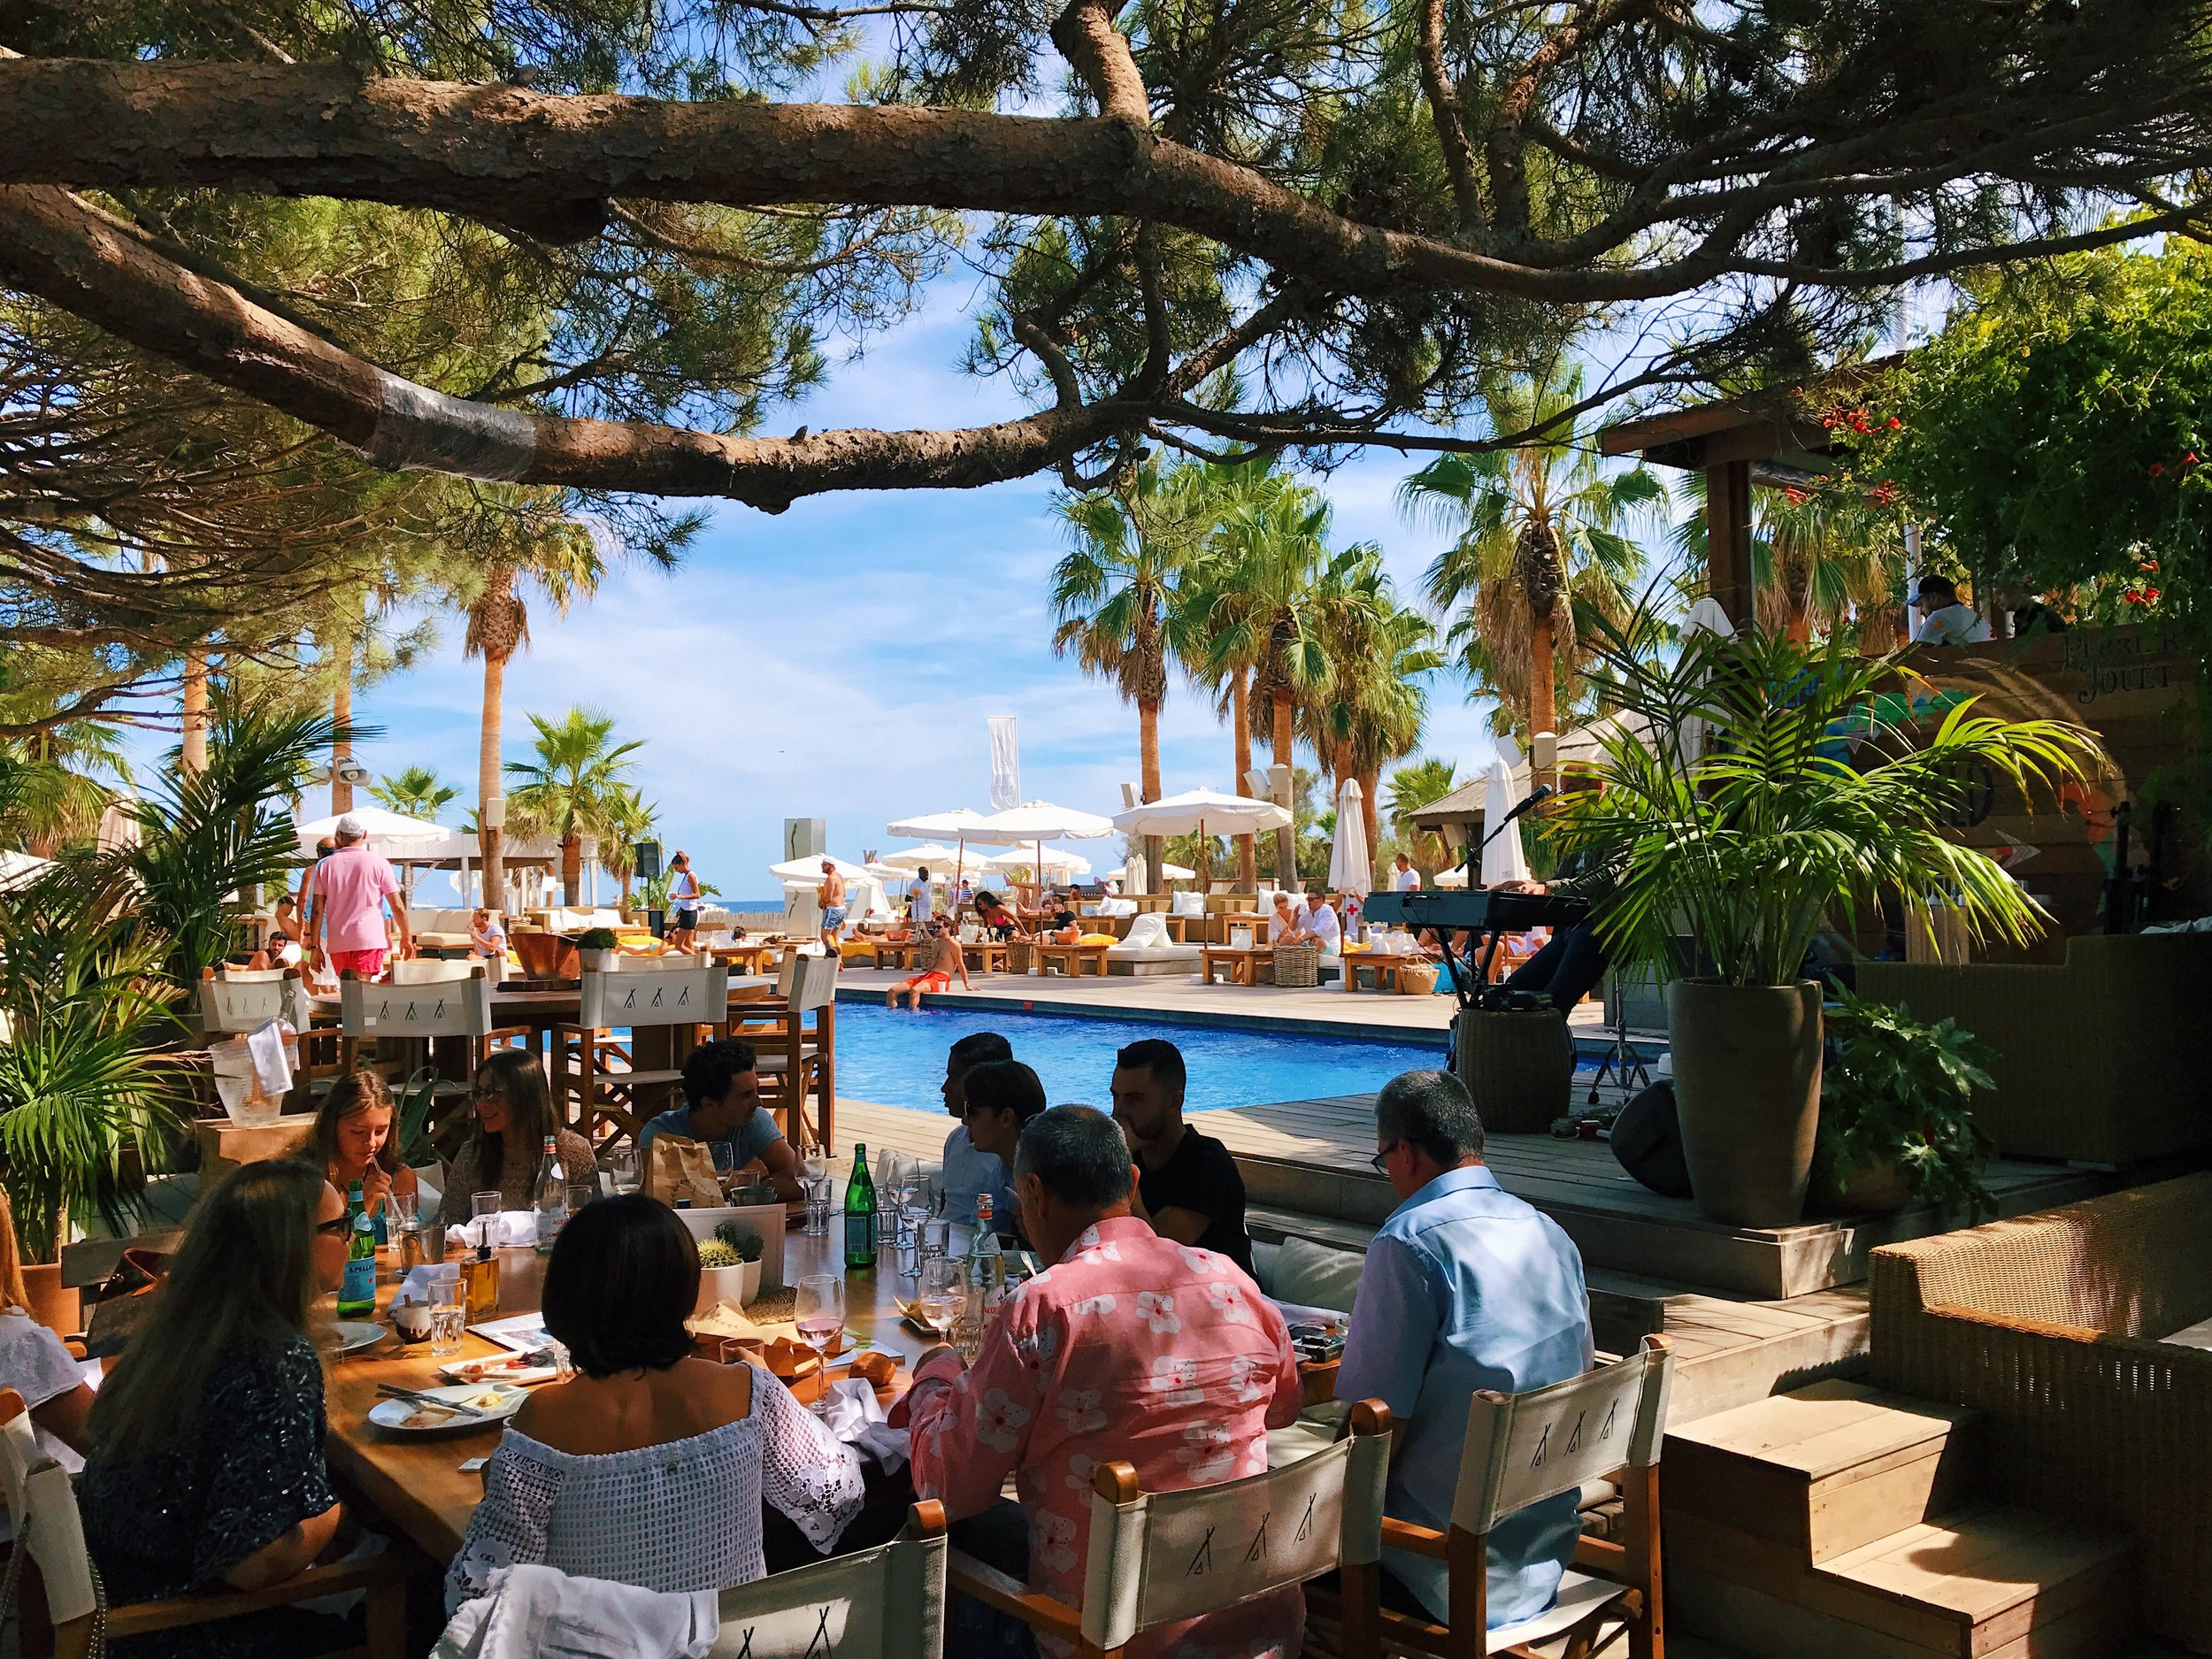 Serious brunch goals at Nikki Beach St Tropez